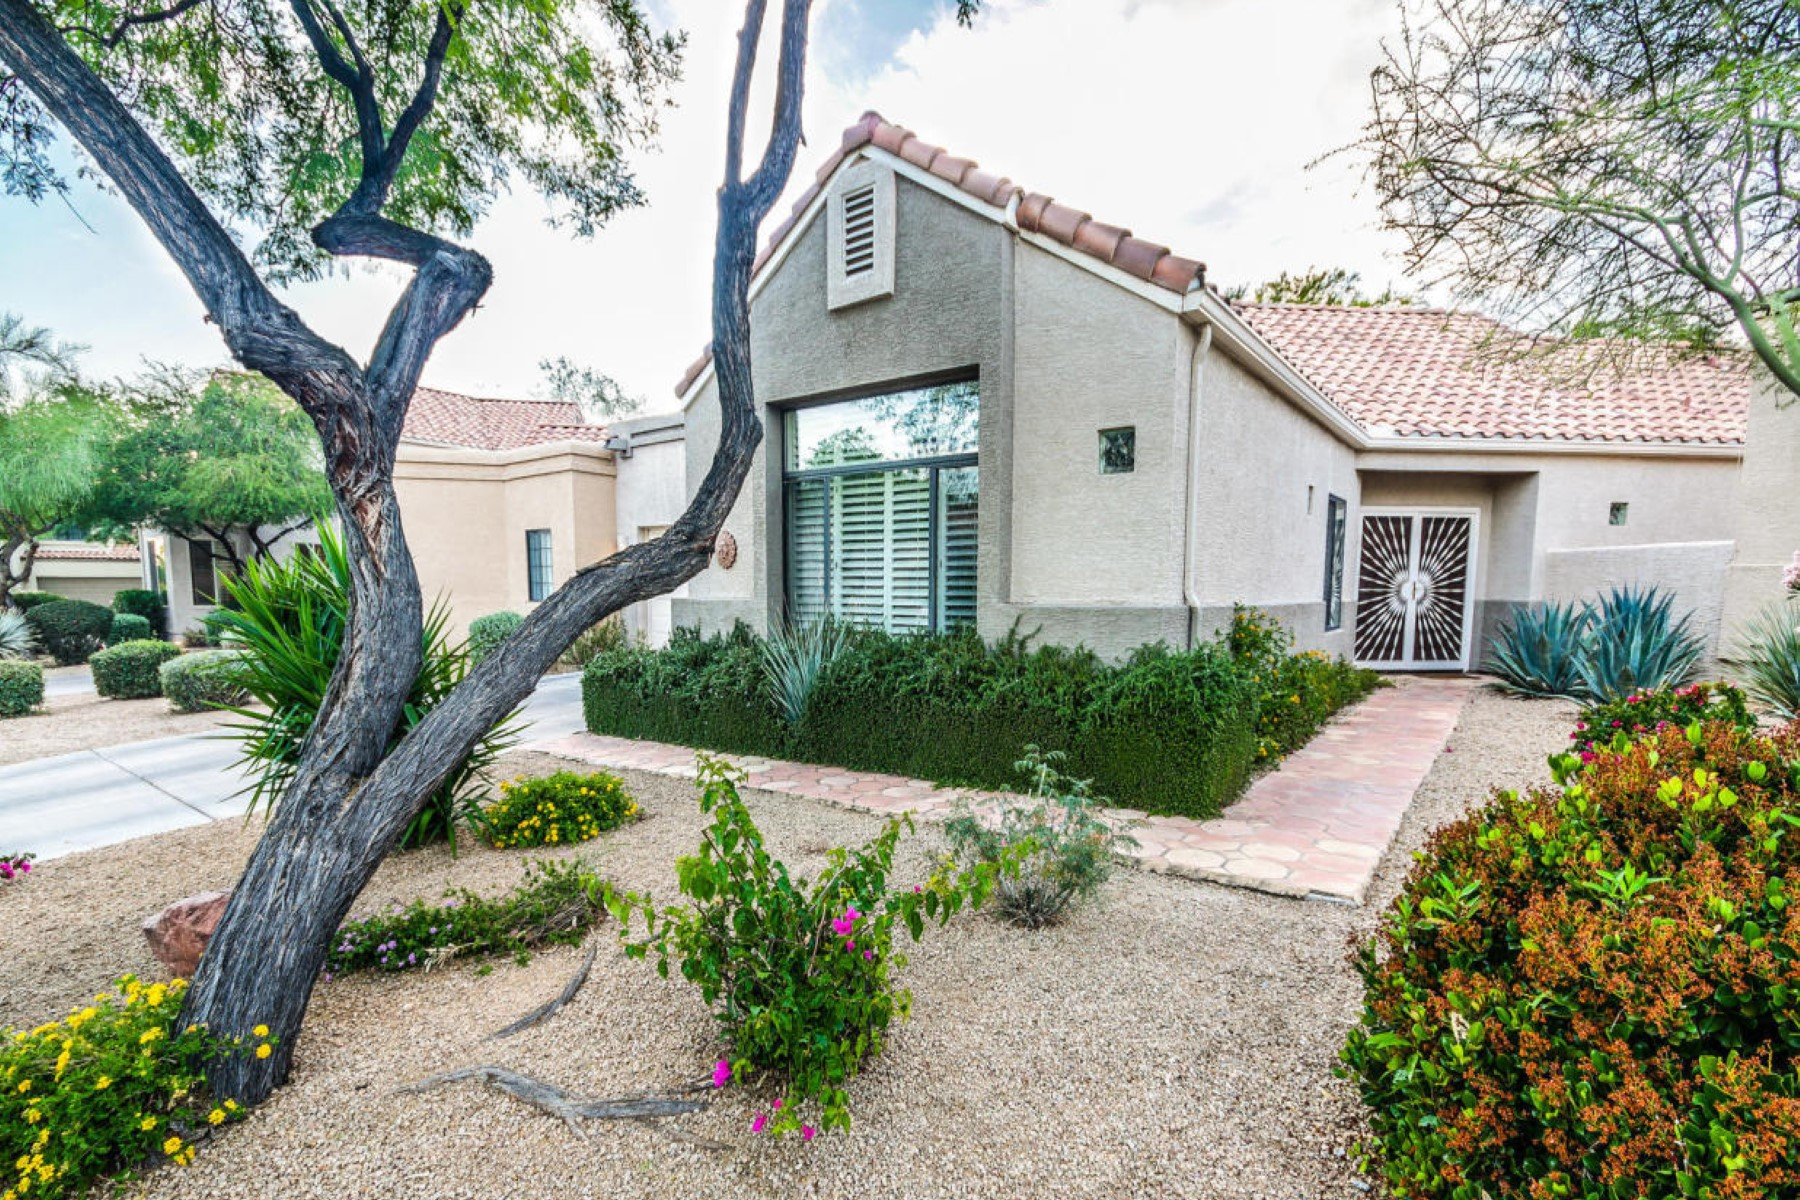 Townhouse for Sale at Charming three bedroom single level patio home. 23540 N 75th PL Scottsdale, Arizona 85255 United States